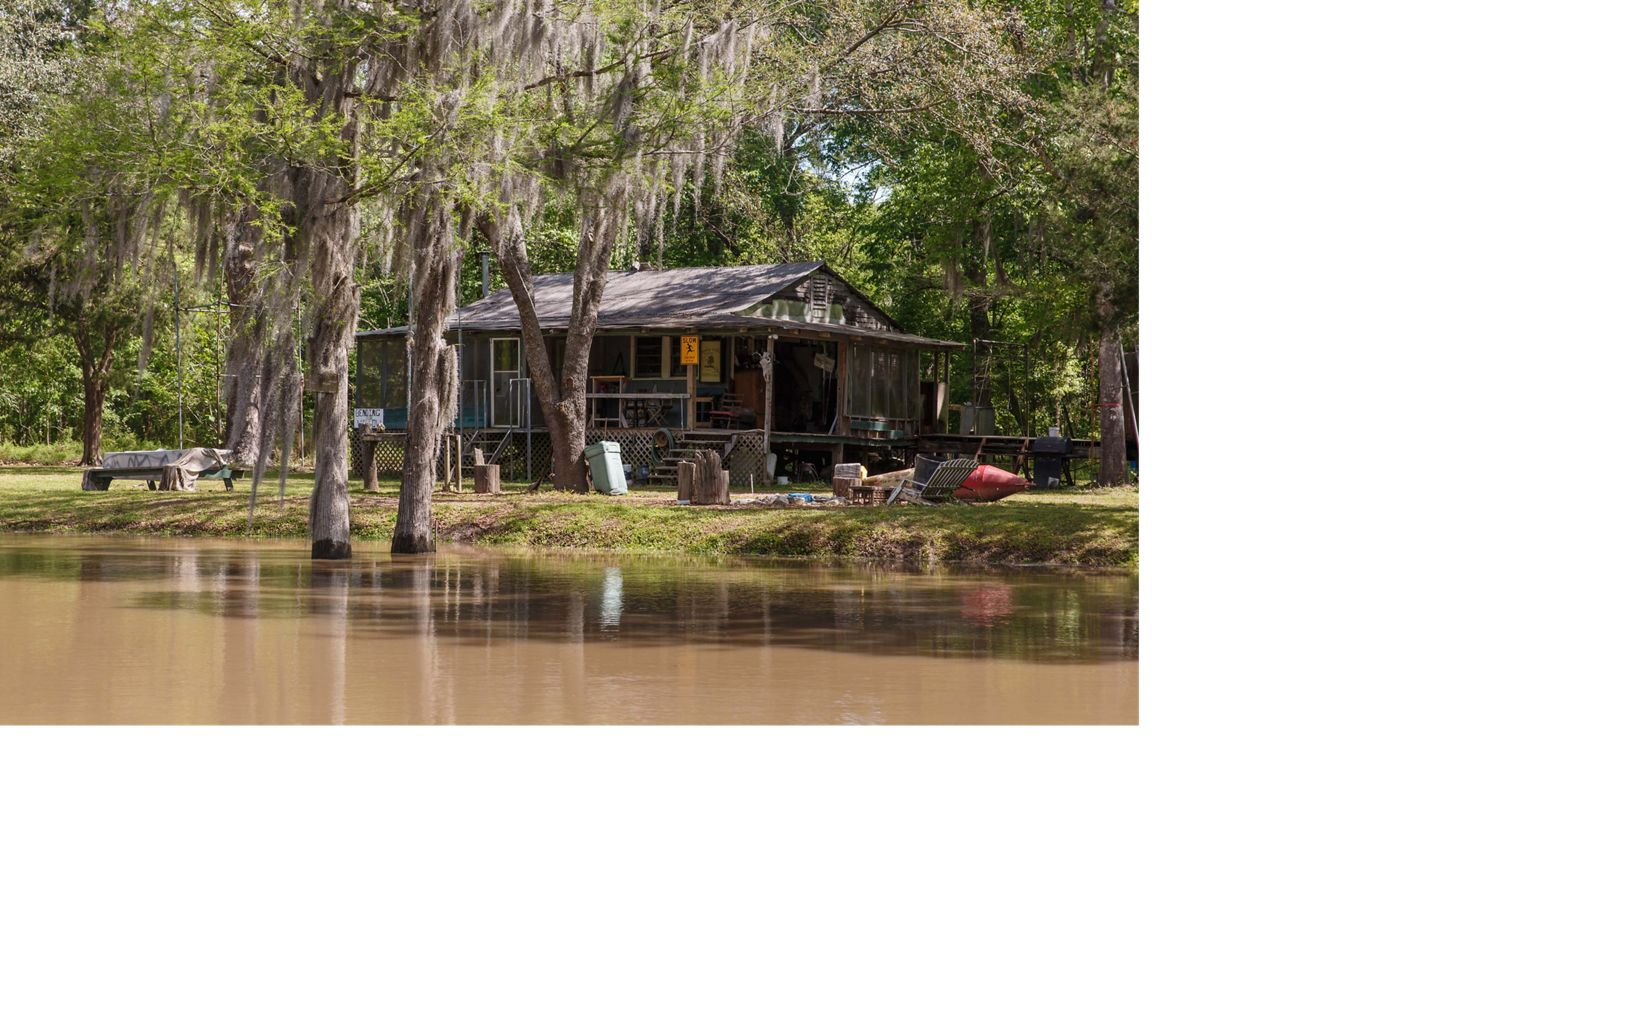 A camp in the Atchafalaya Basin.